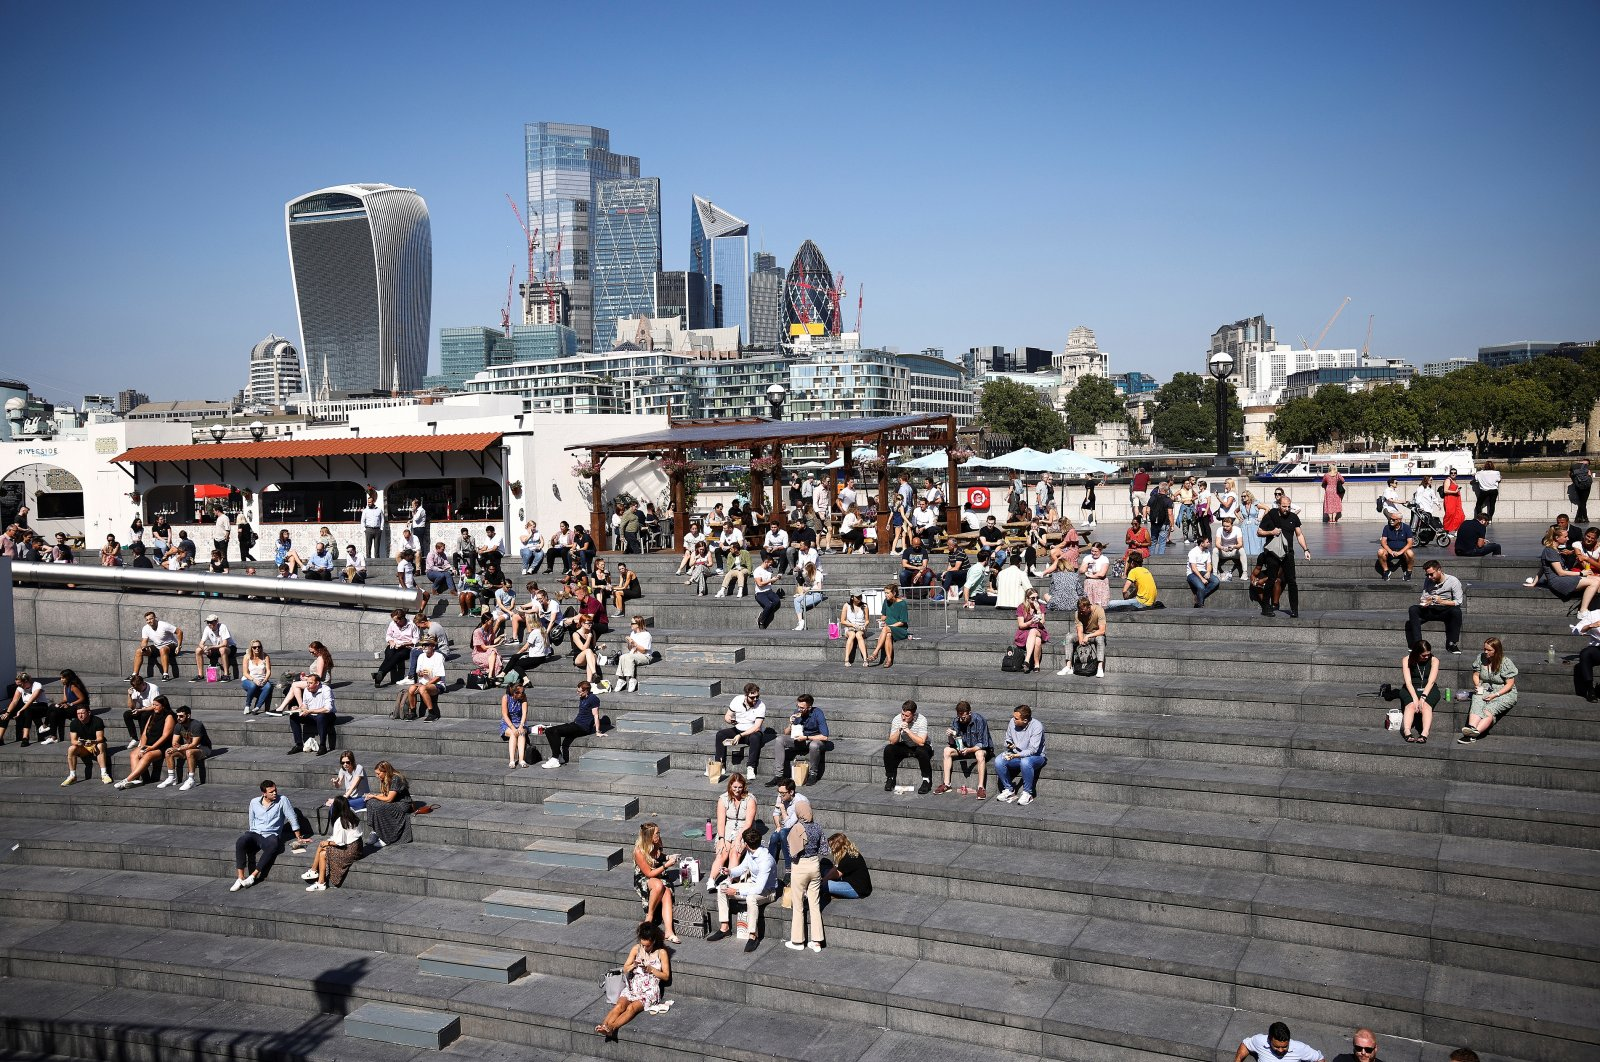 London's financial district can be seen in the background as people relax in the sunny weather on the south side of the River Thames in London, Britain, Sept. 7, 2021. (Reuters Photo)